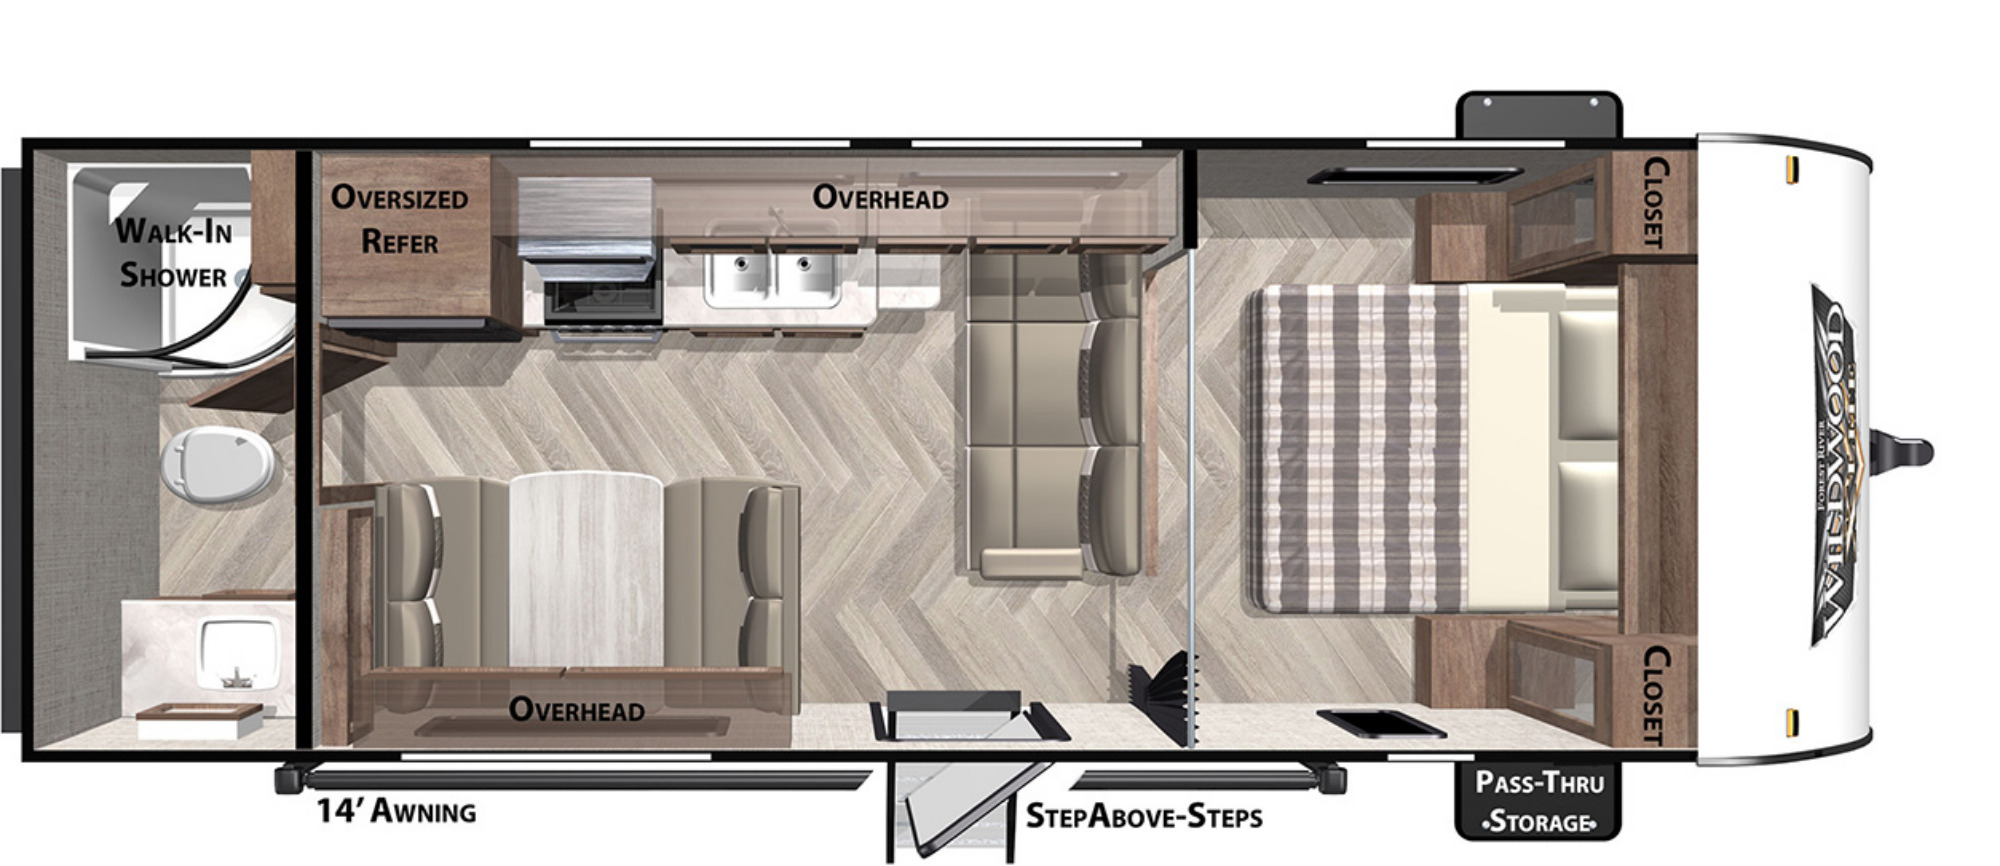 View Floor Plan for 2021 FOREST RIVER WILDWOOD X-LITE 241QBXL